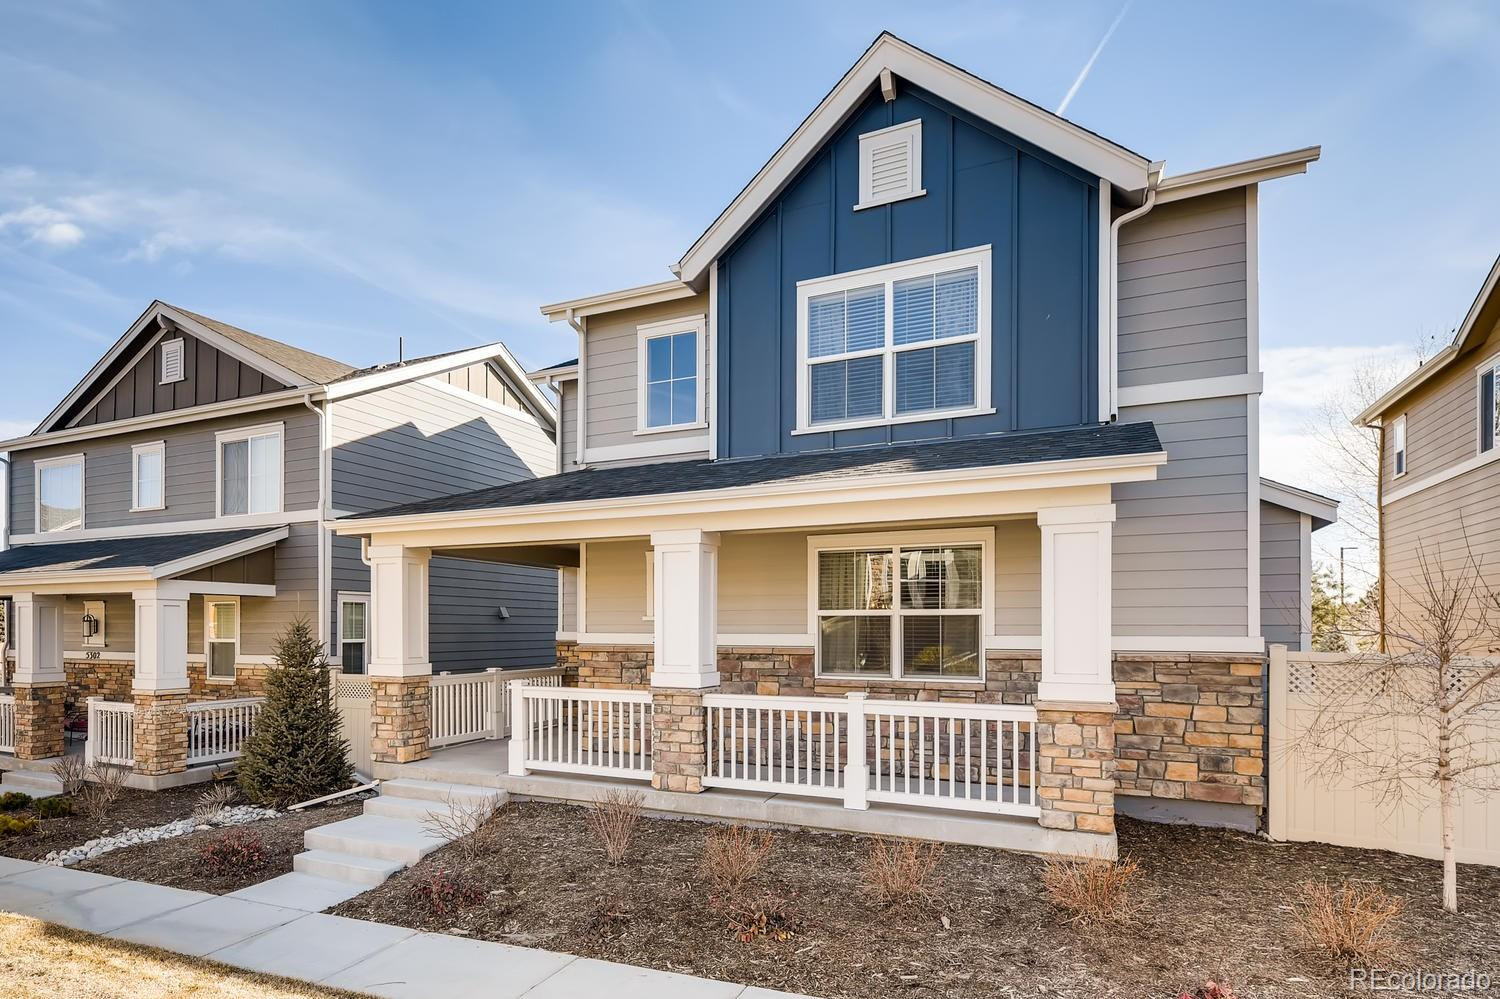 MLS# 1631314 - 3 - 5312 W 73rd Place, Westminster, CO 80003